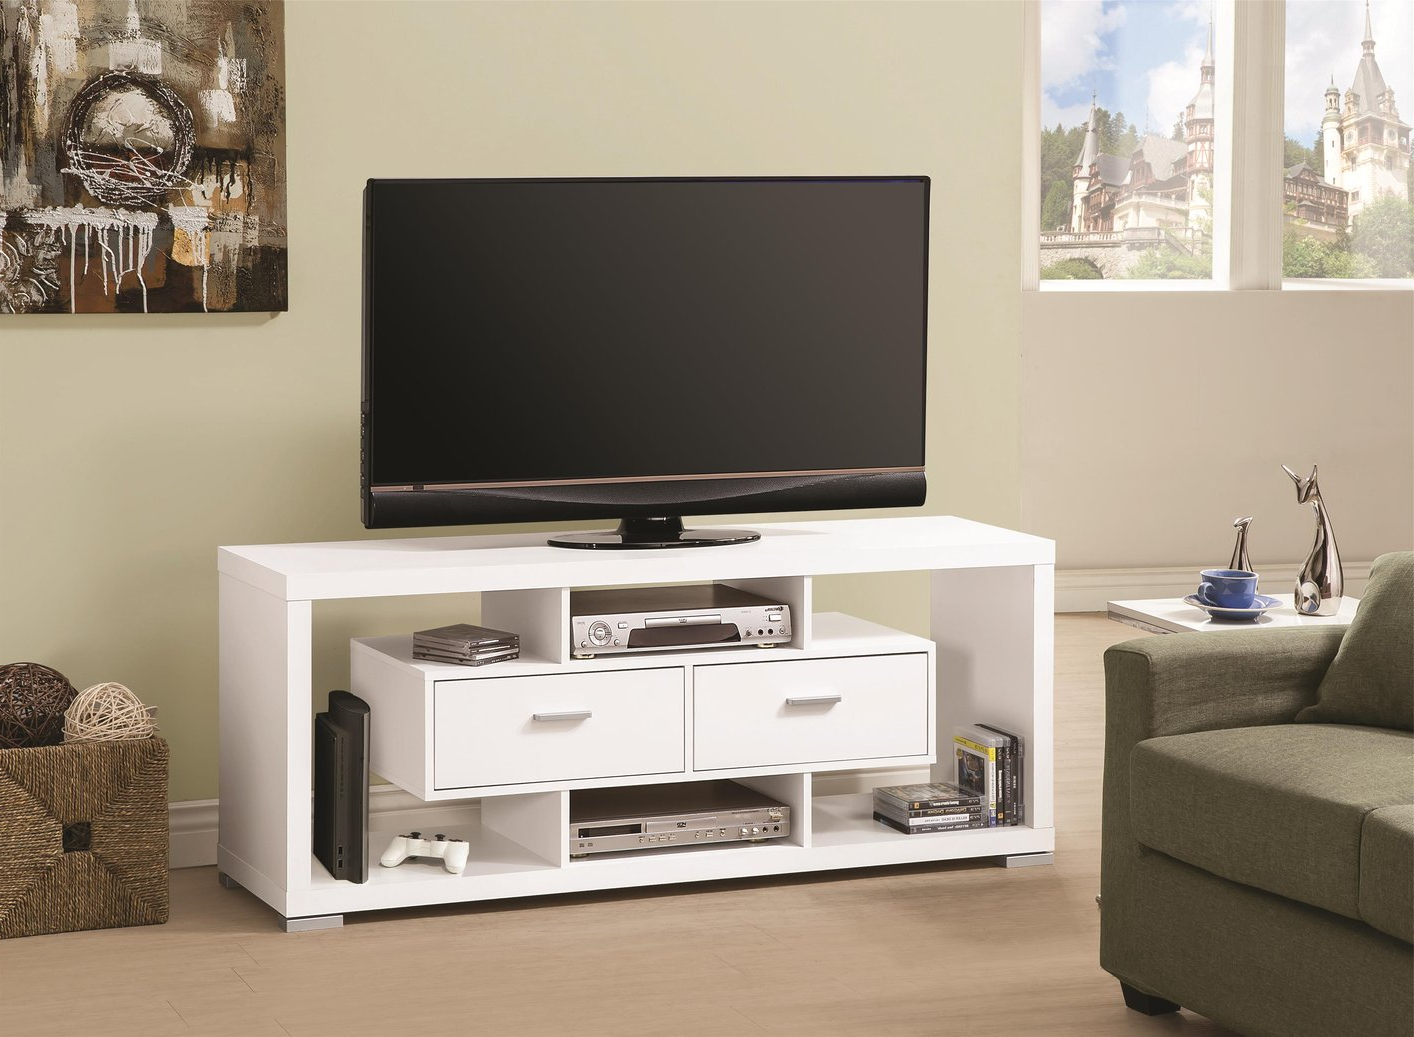 White Tv Stands For Flat Screens Inside Preferred 80 Inch Tv Stand Best Buy Modern Flat Screen Base Target Stands (View 14 of 20)